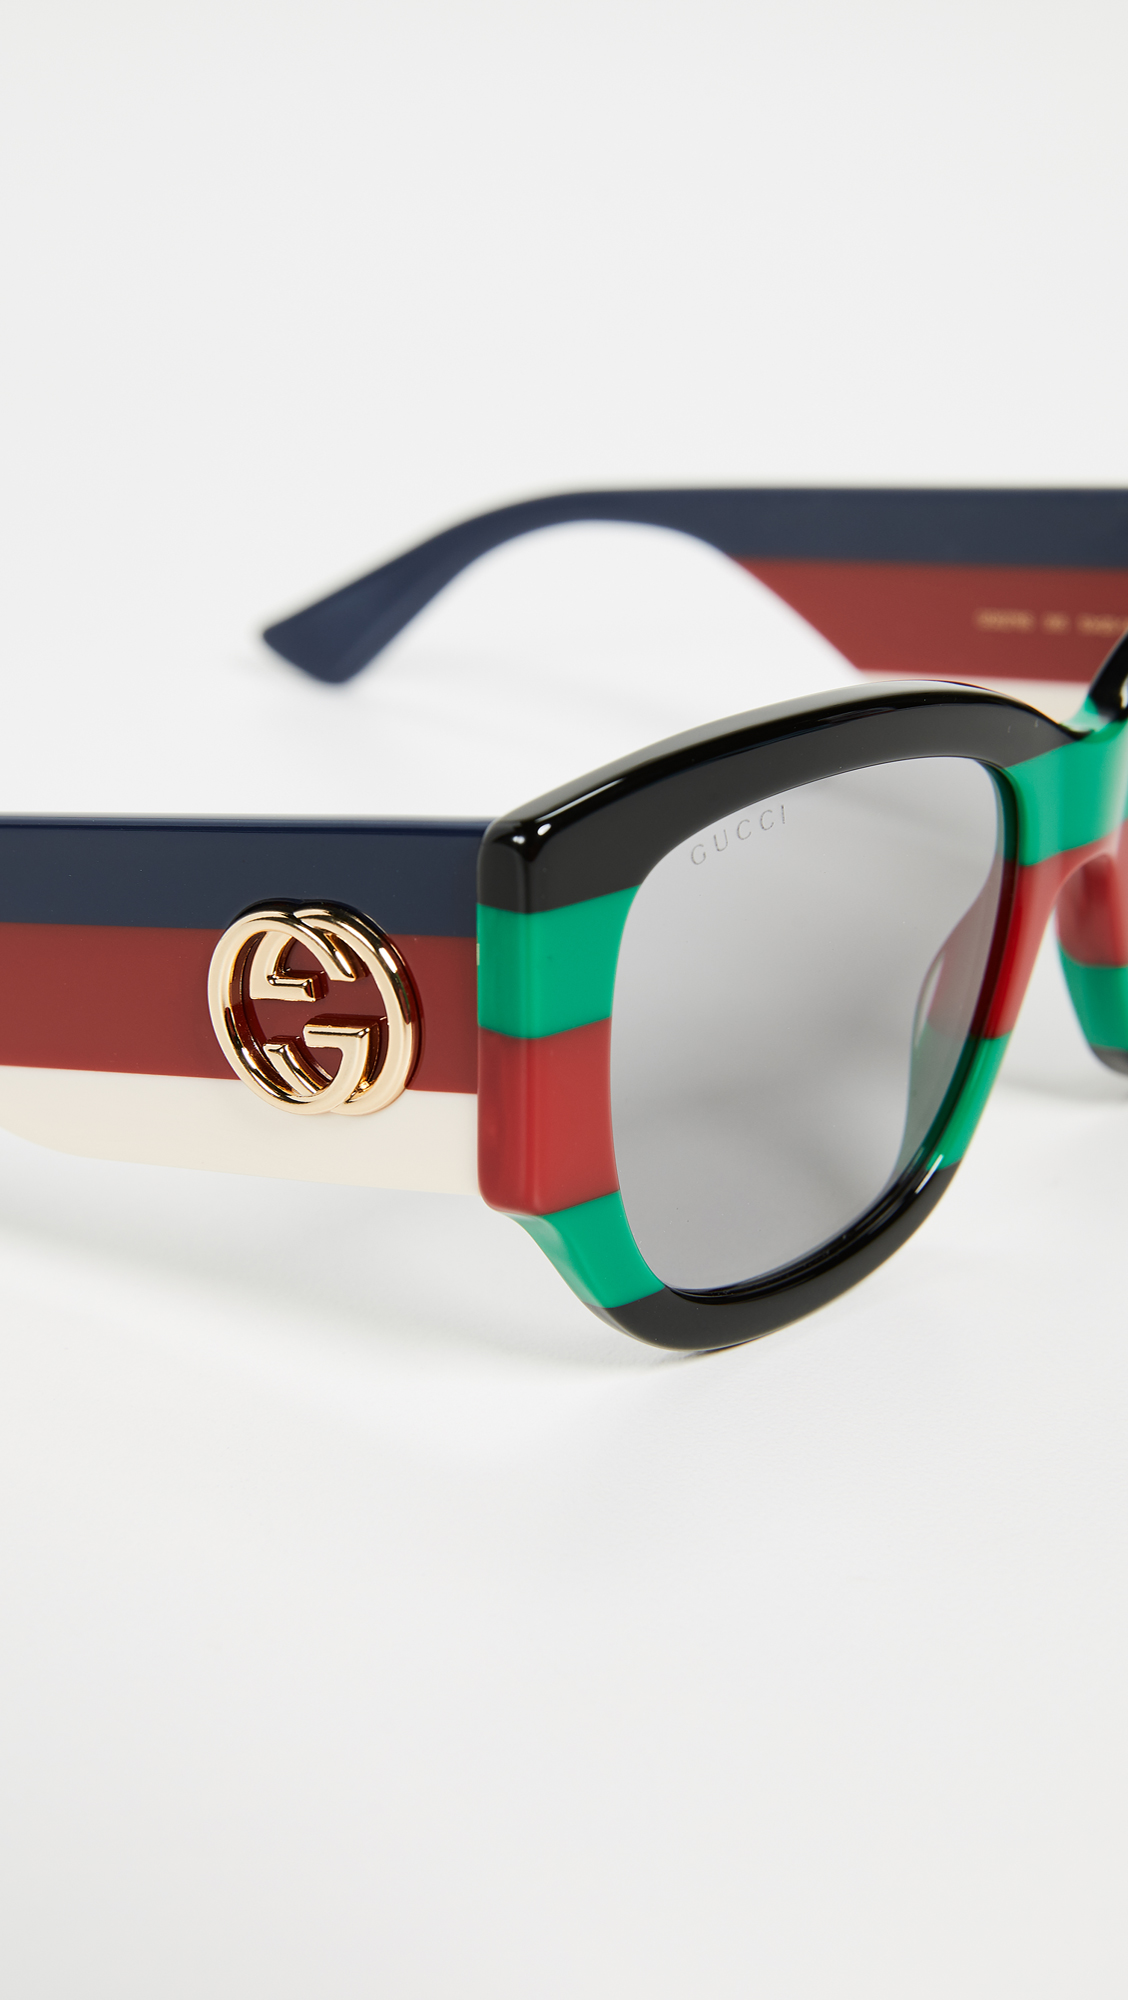 576e37f5568 Gucci sylvie bold cat eye sunglasses shopbop jpg 1128x2000 Leather gucci  eyeglasses